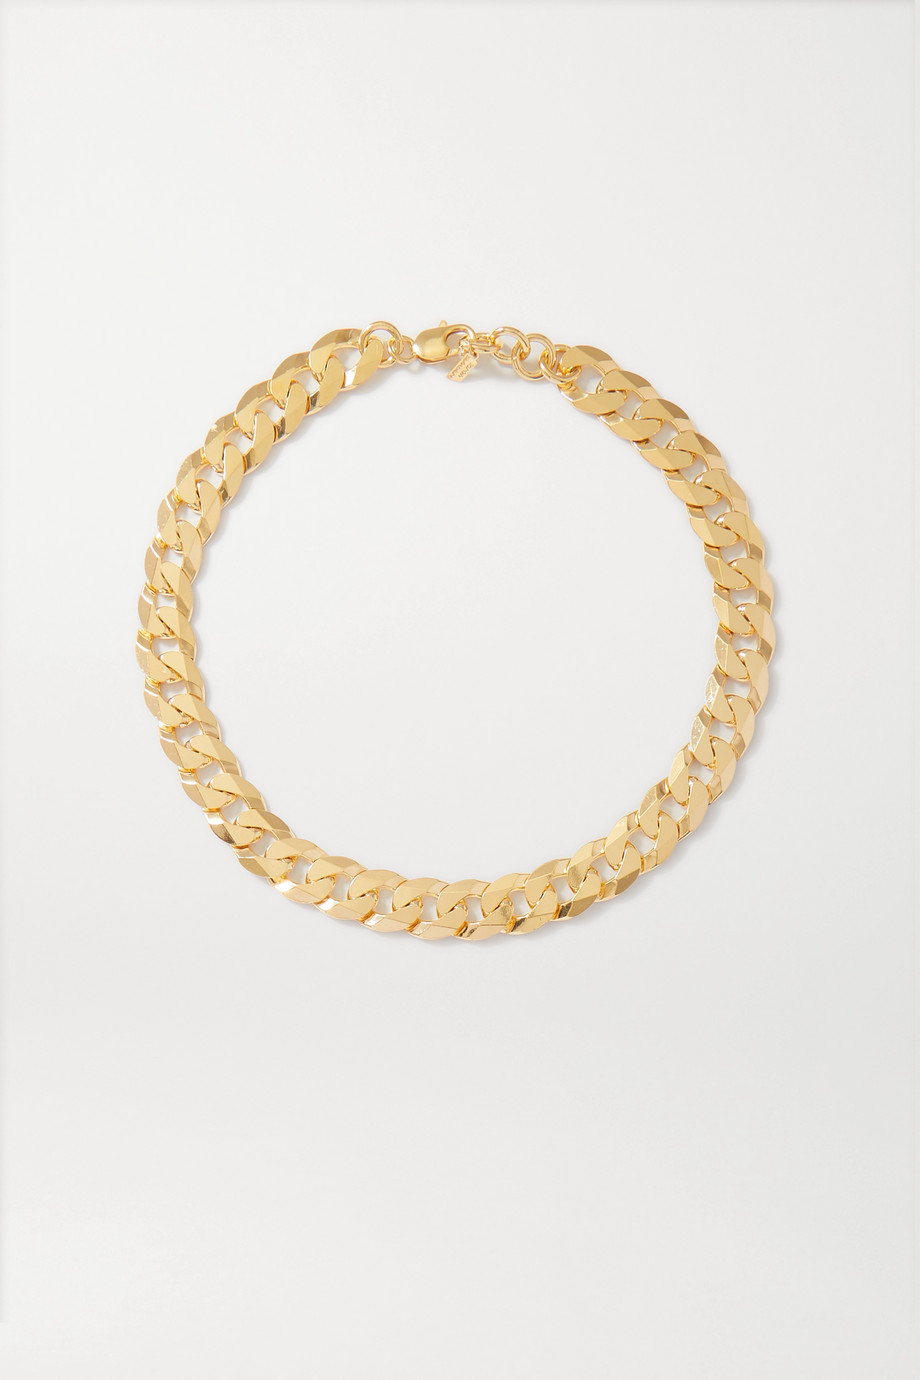 Loren Stewart XXL gold necklace